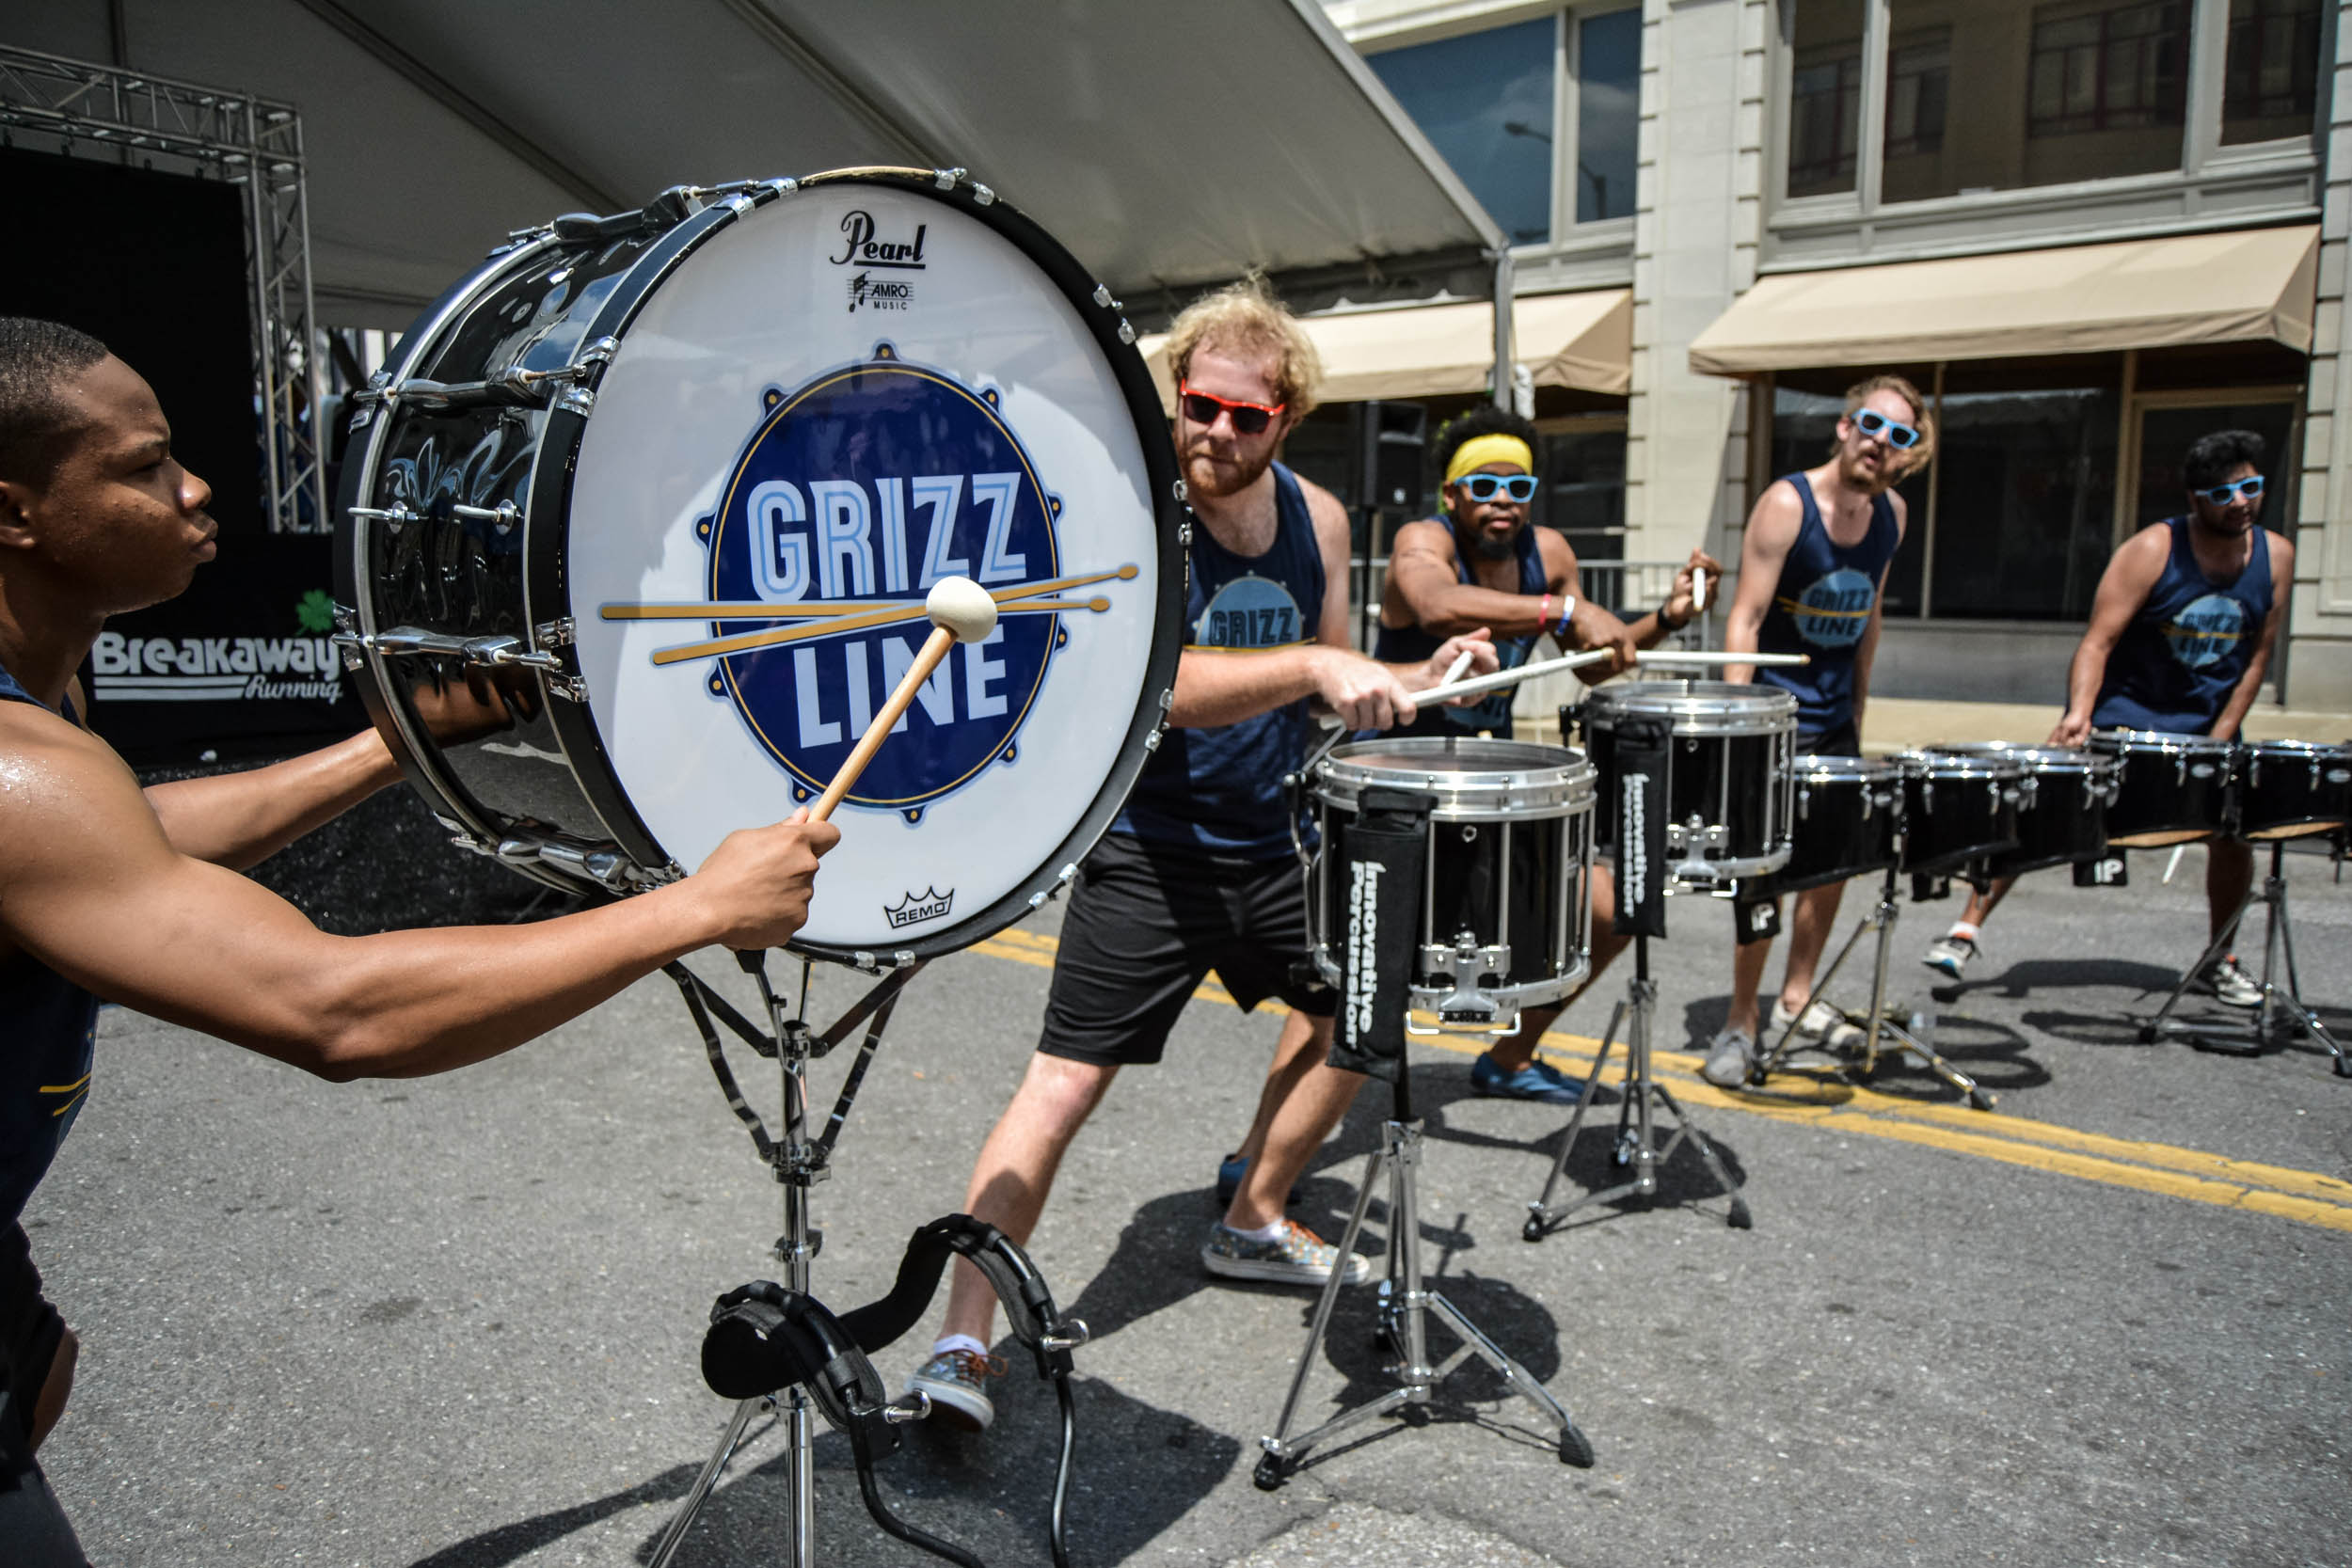 GRIZZLINE Performance